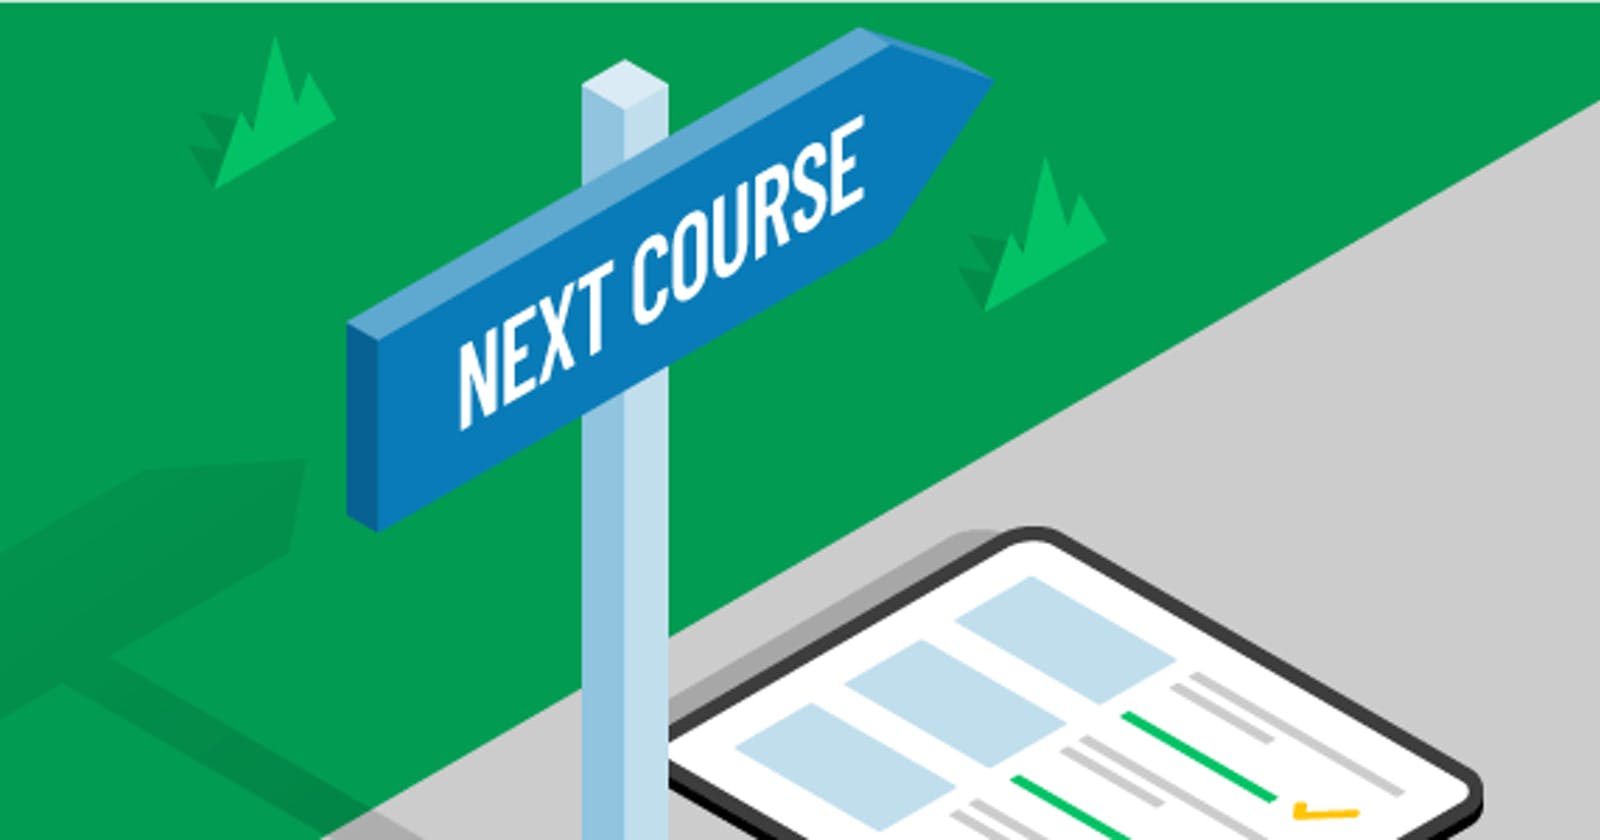 10 Websites To Find Your Next Programming Course